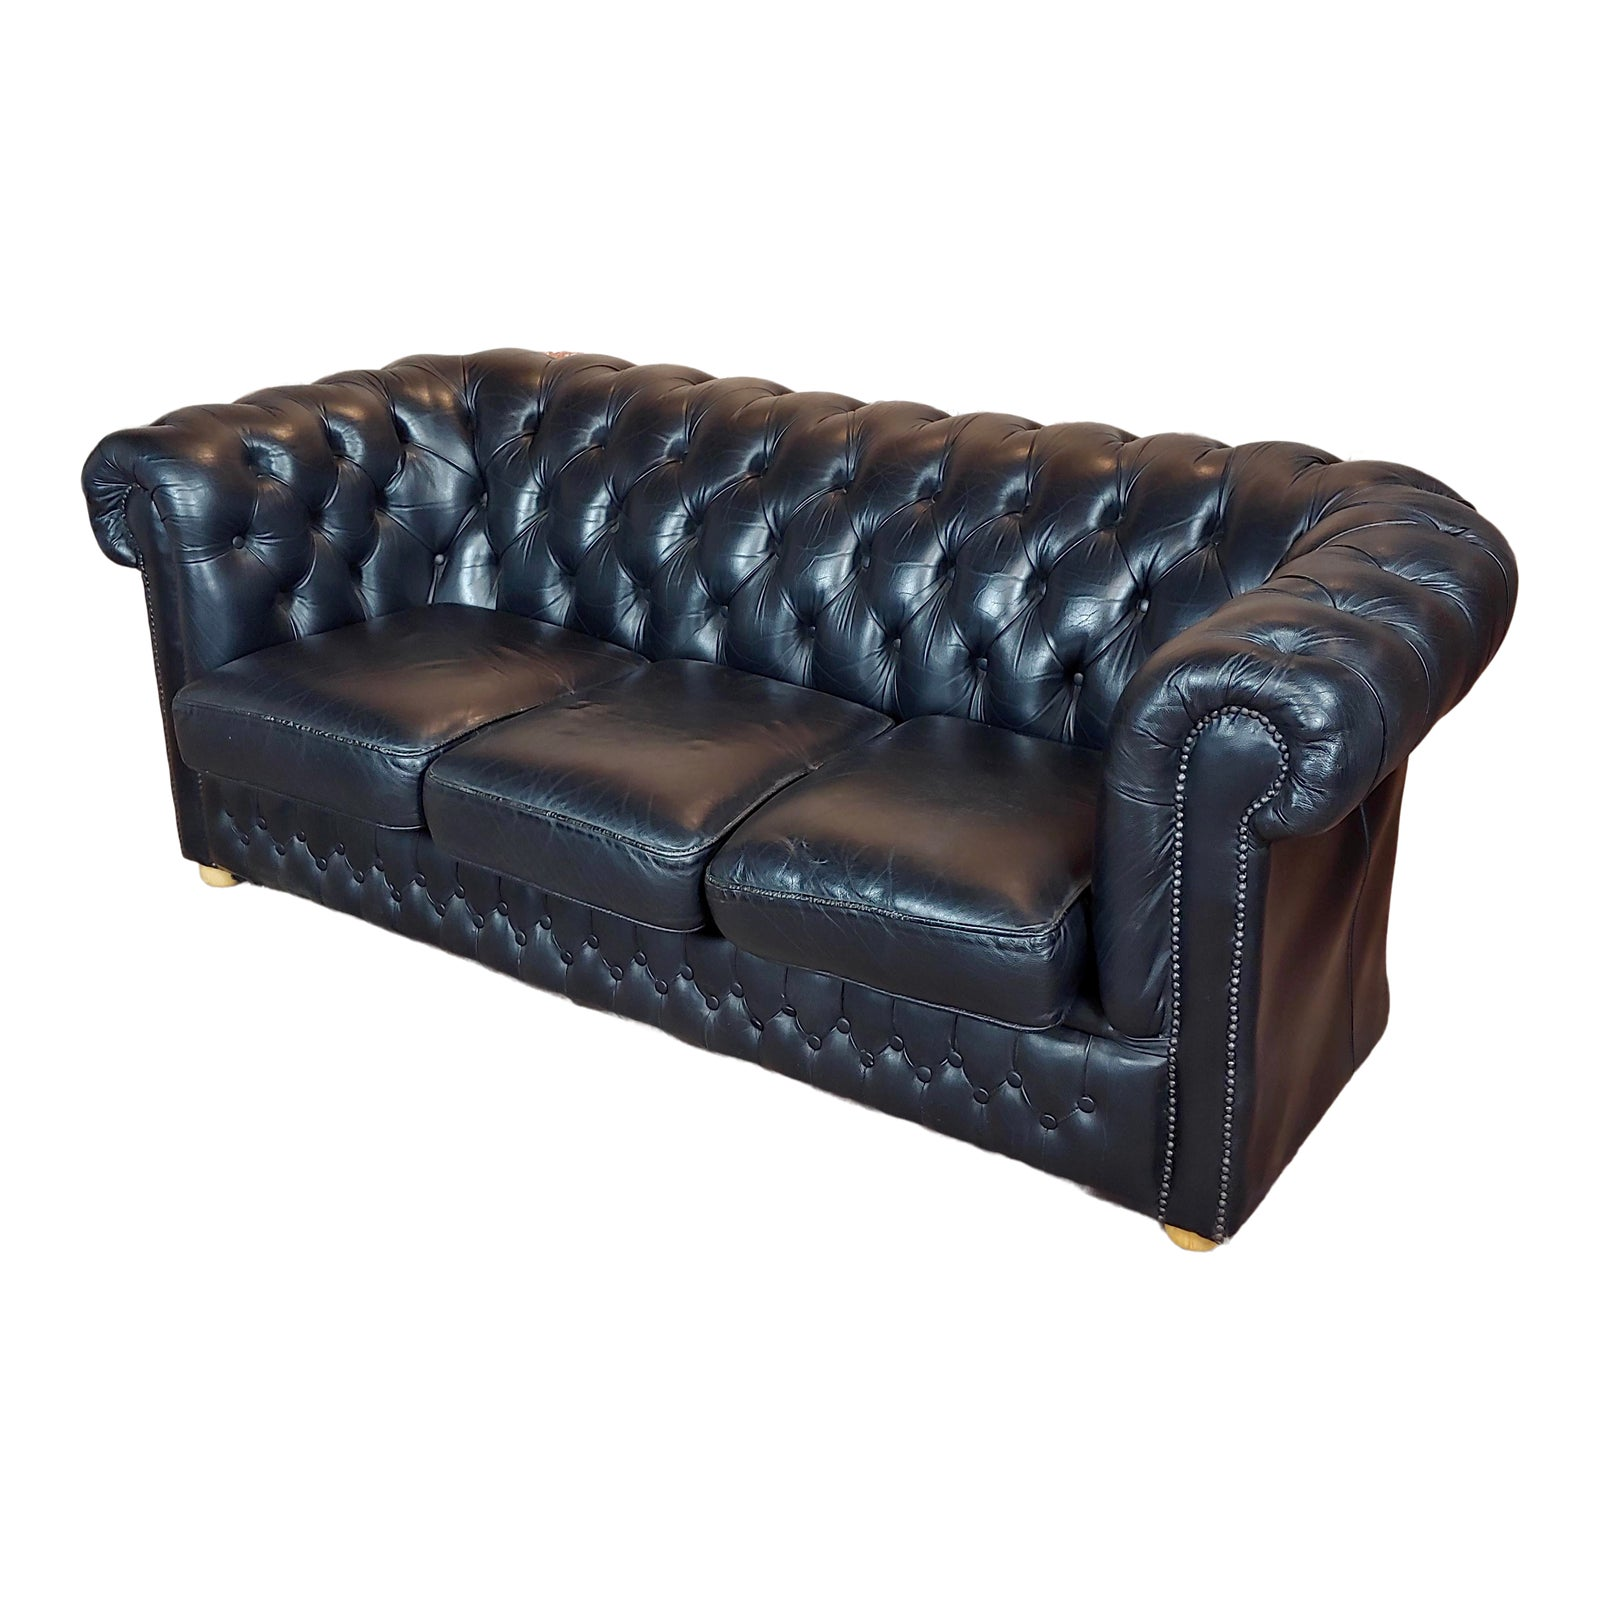 1960s Vintage Chesterfield Black Leather Sofa